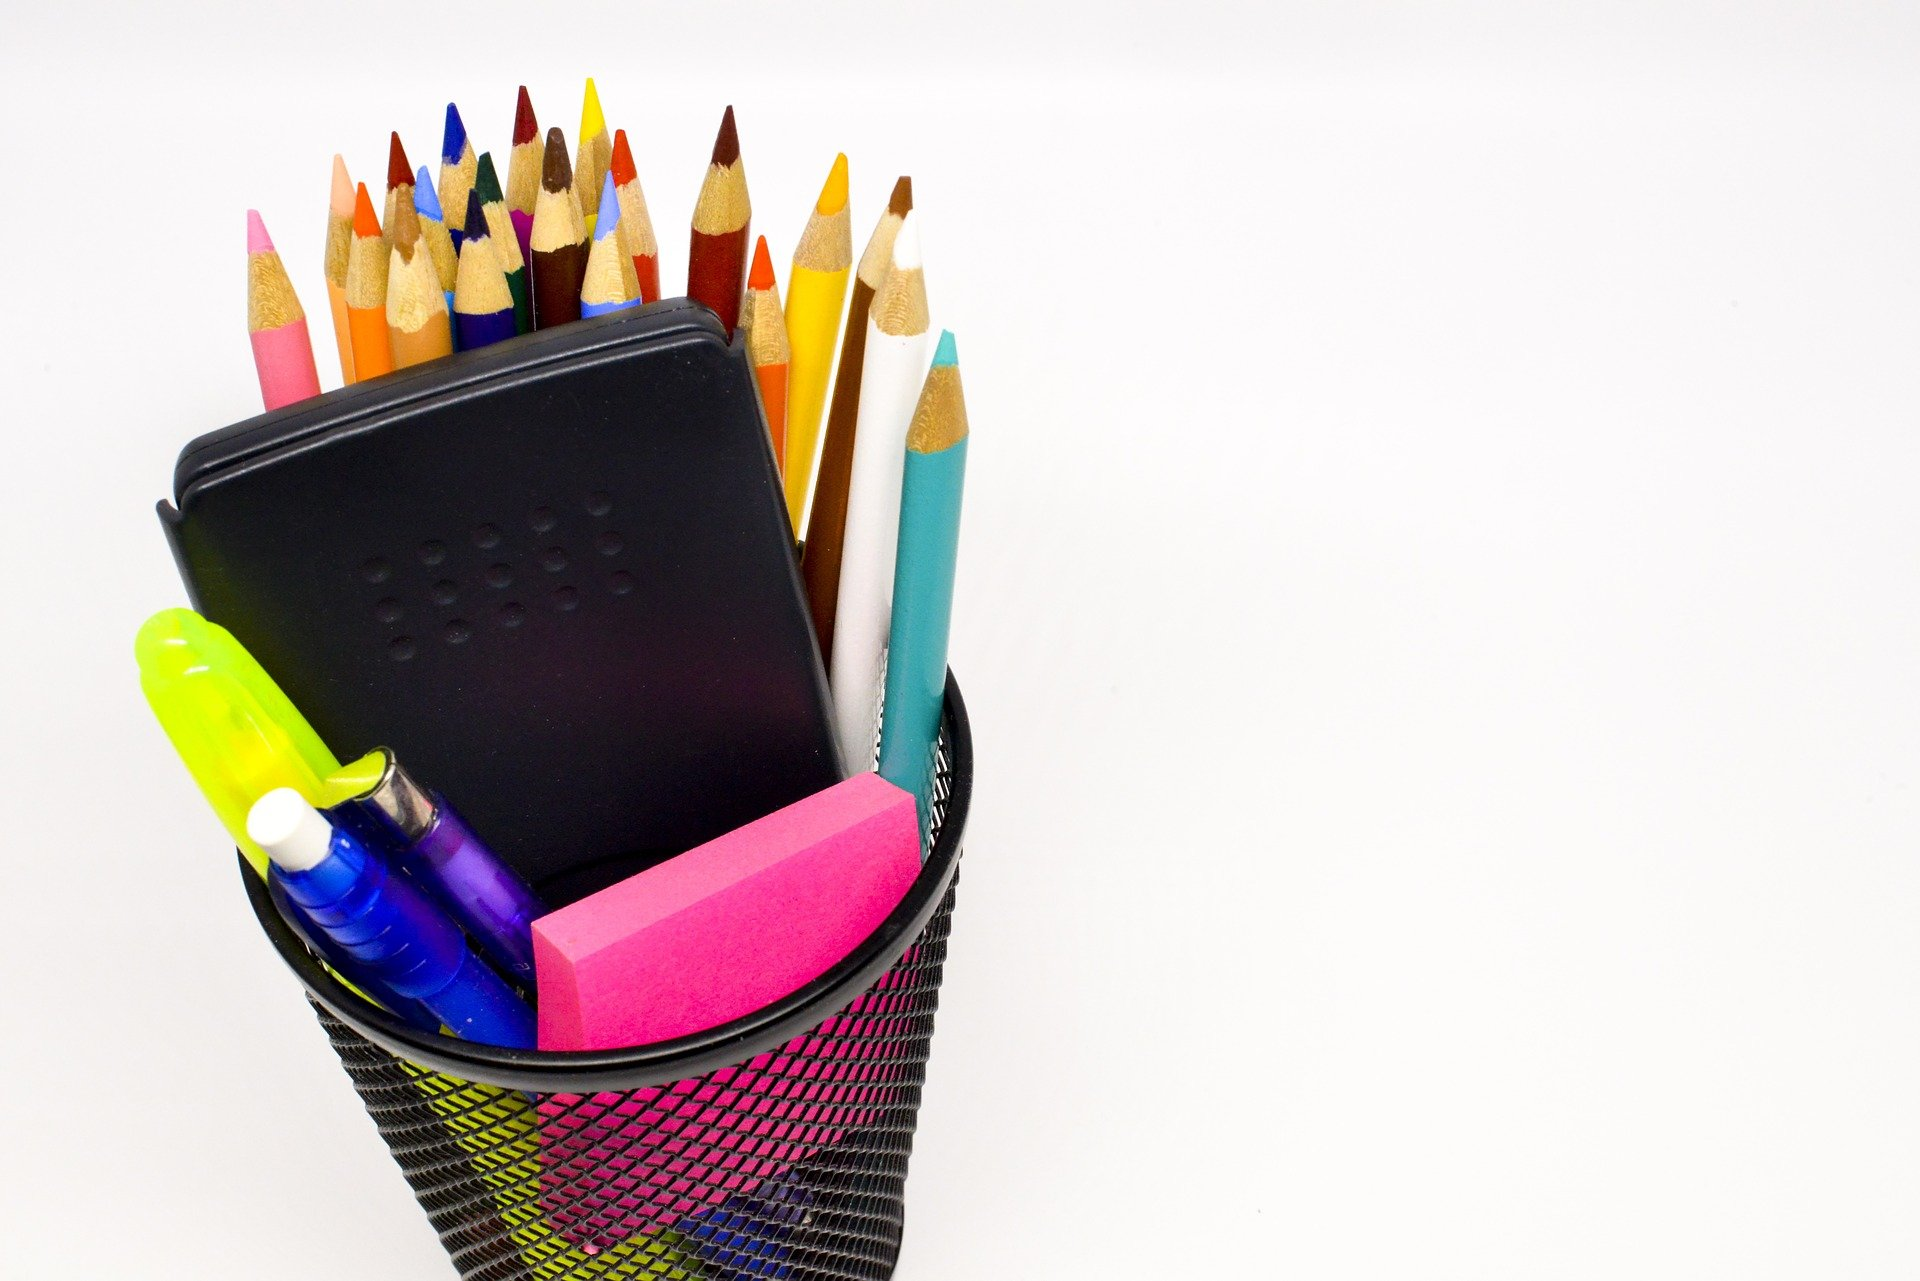 7 Inspiring Websites to Make Outstanding and Creative Lessons